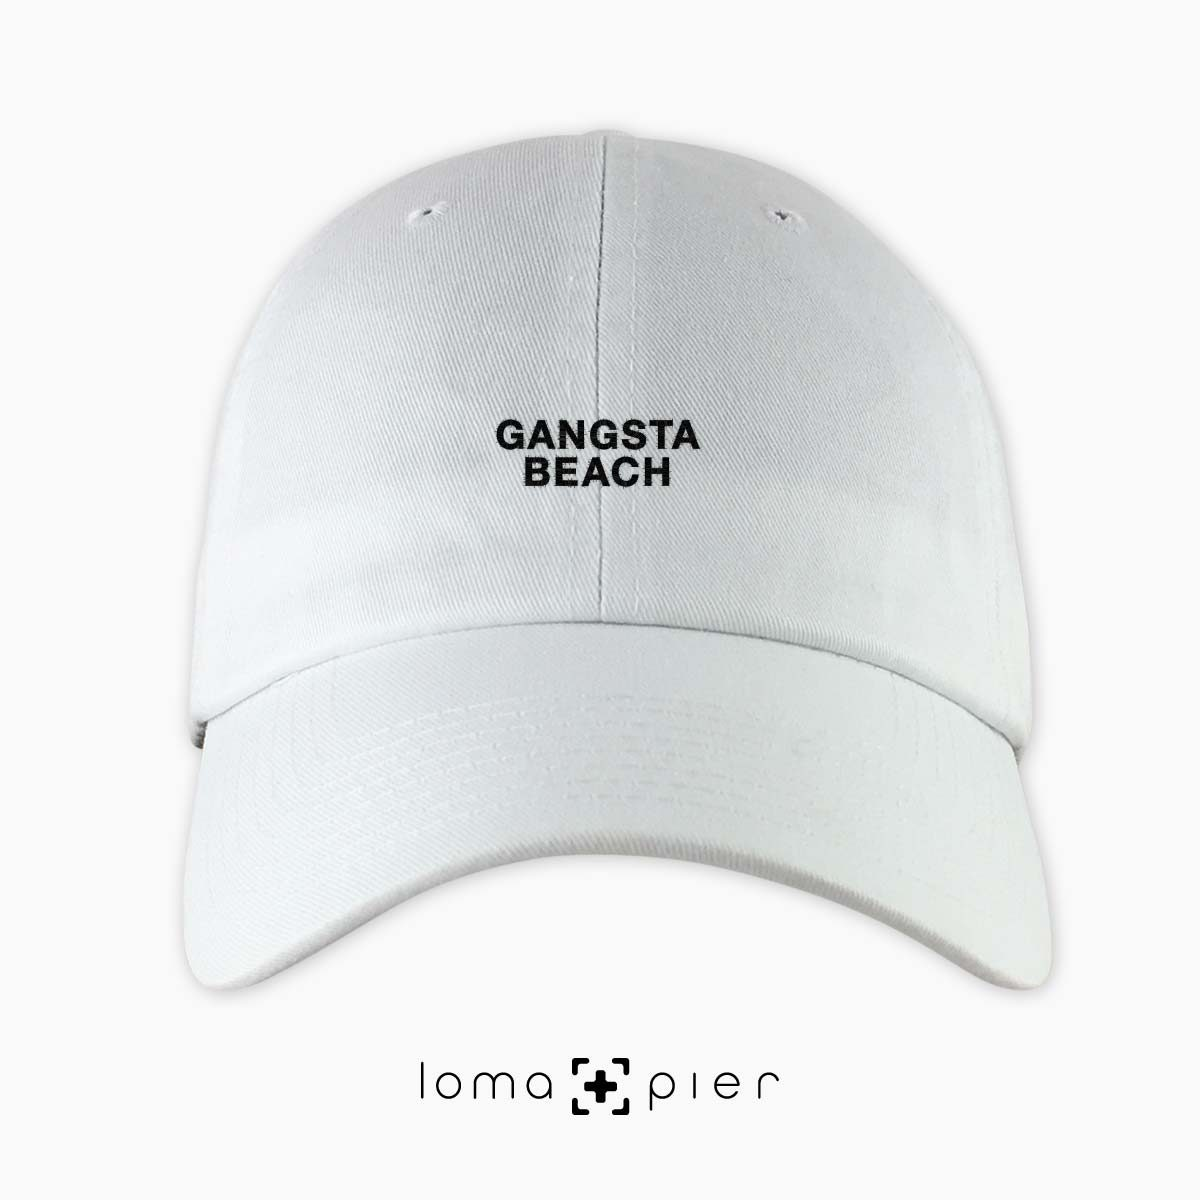 GANGSTA BEACH embroidered on a white unstructured dad hat by loma+pier hat store made in the USA